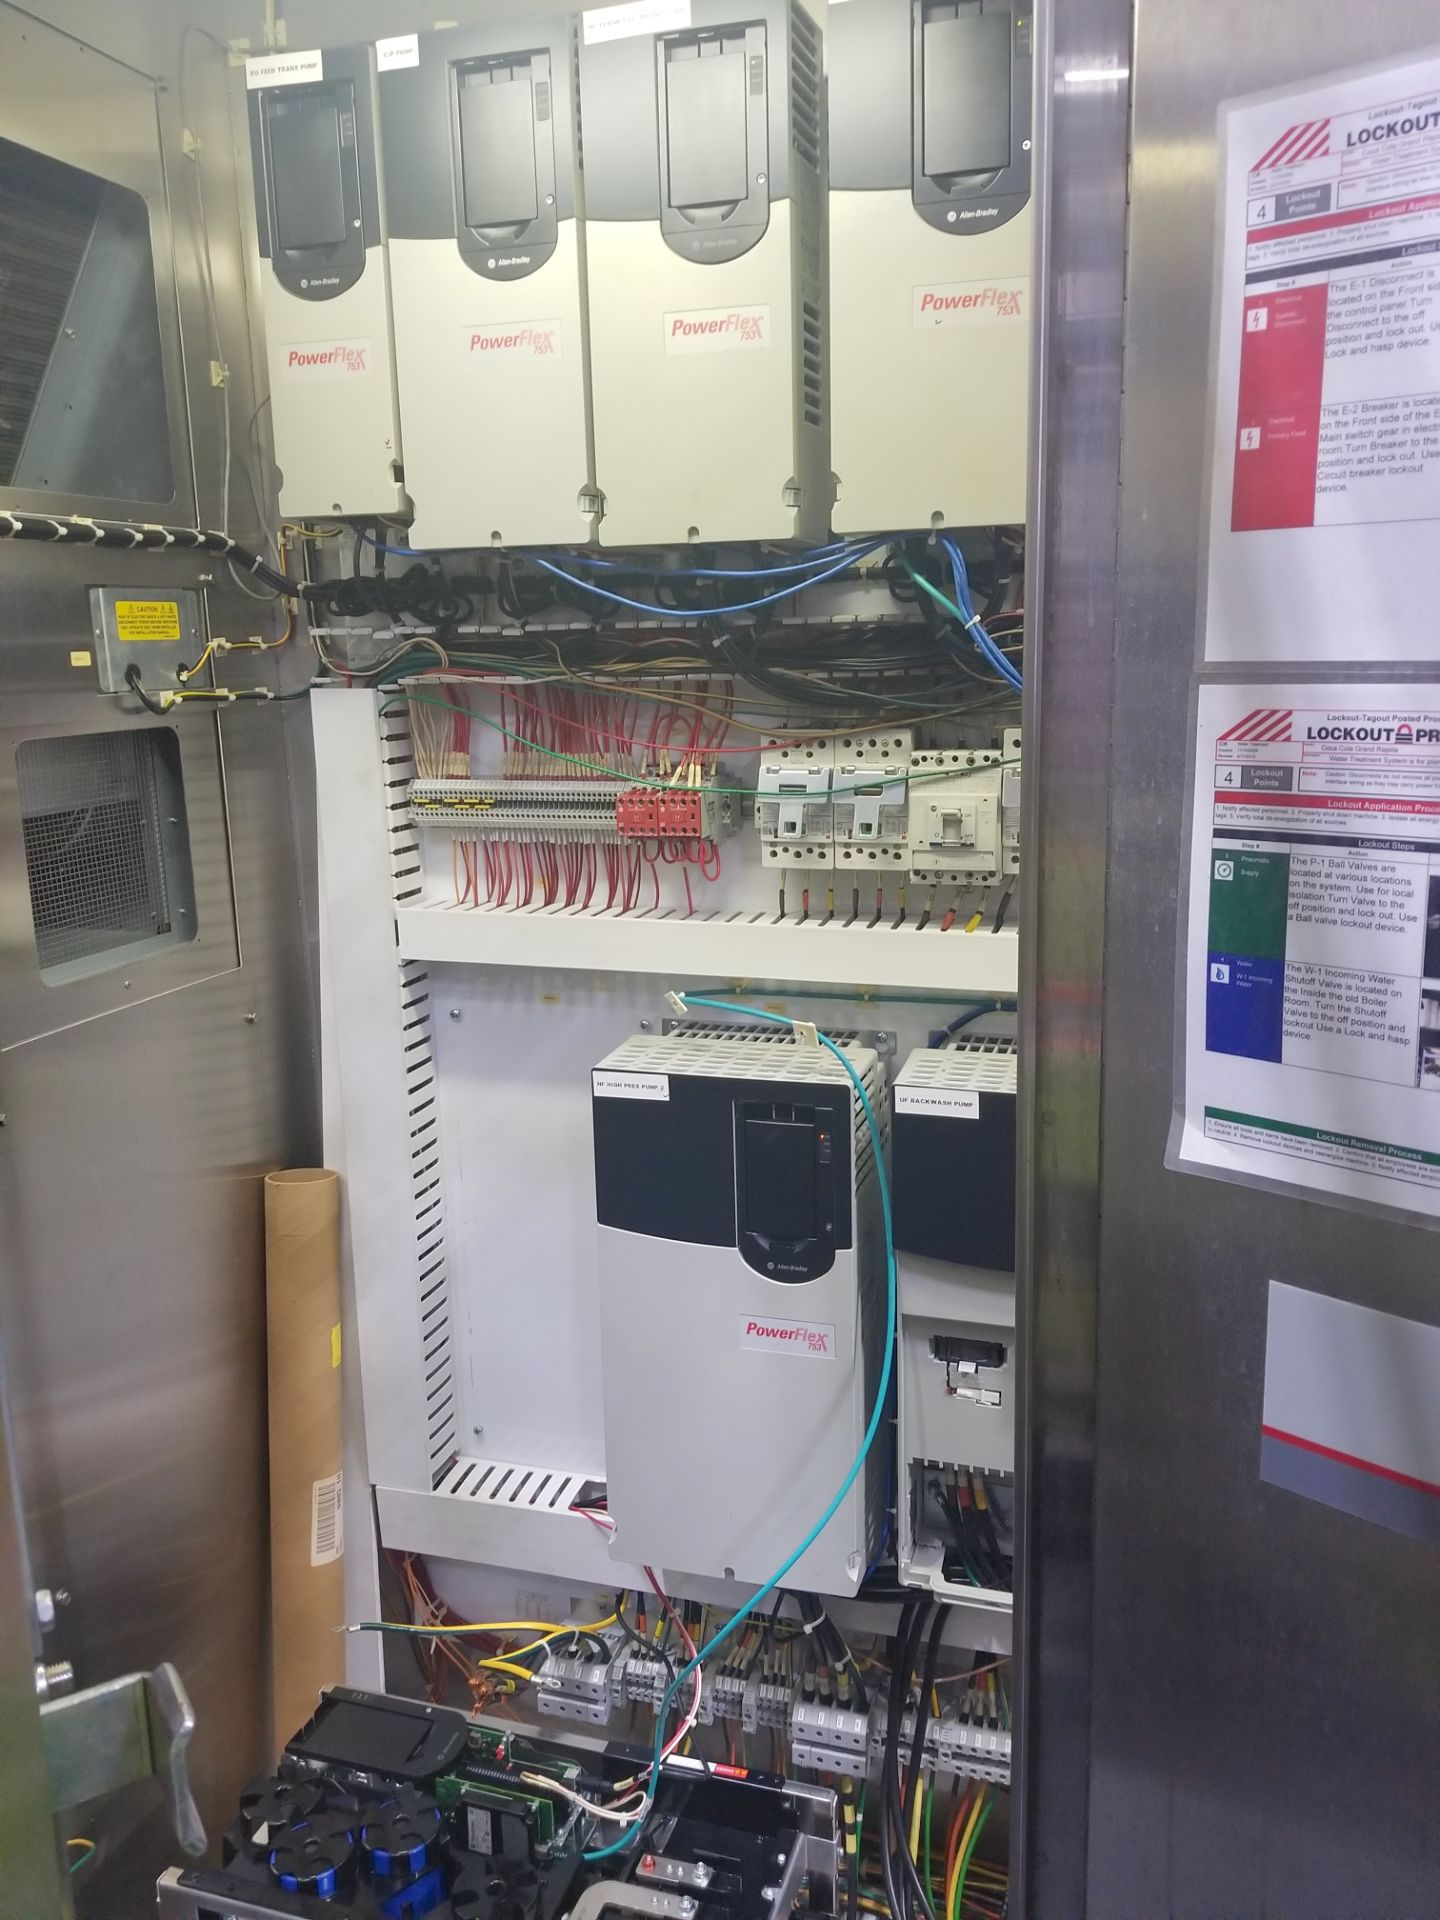 Rockwell Automation VFD Control Panel - Image 6 of 11